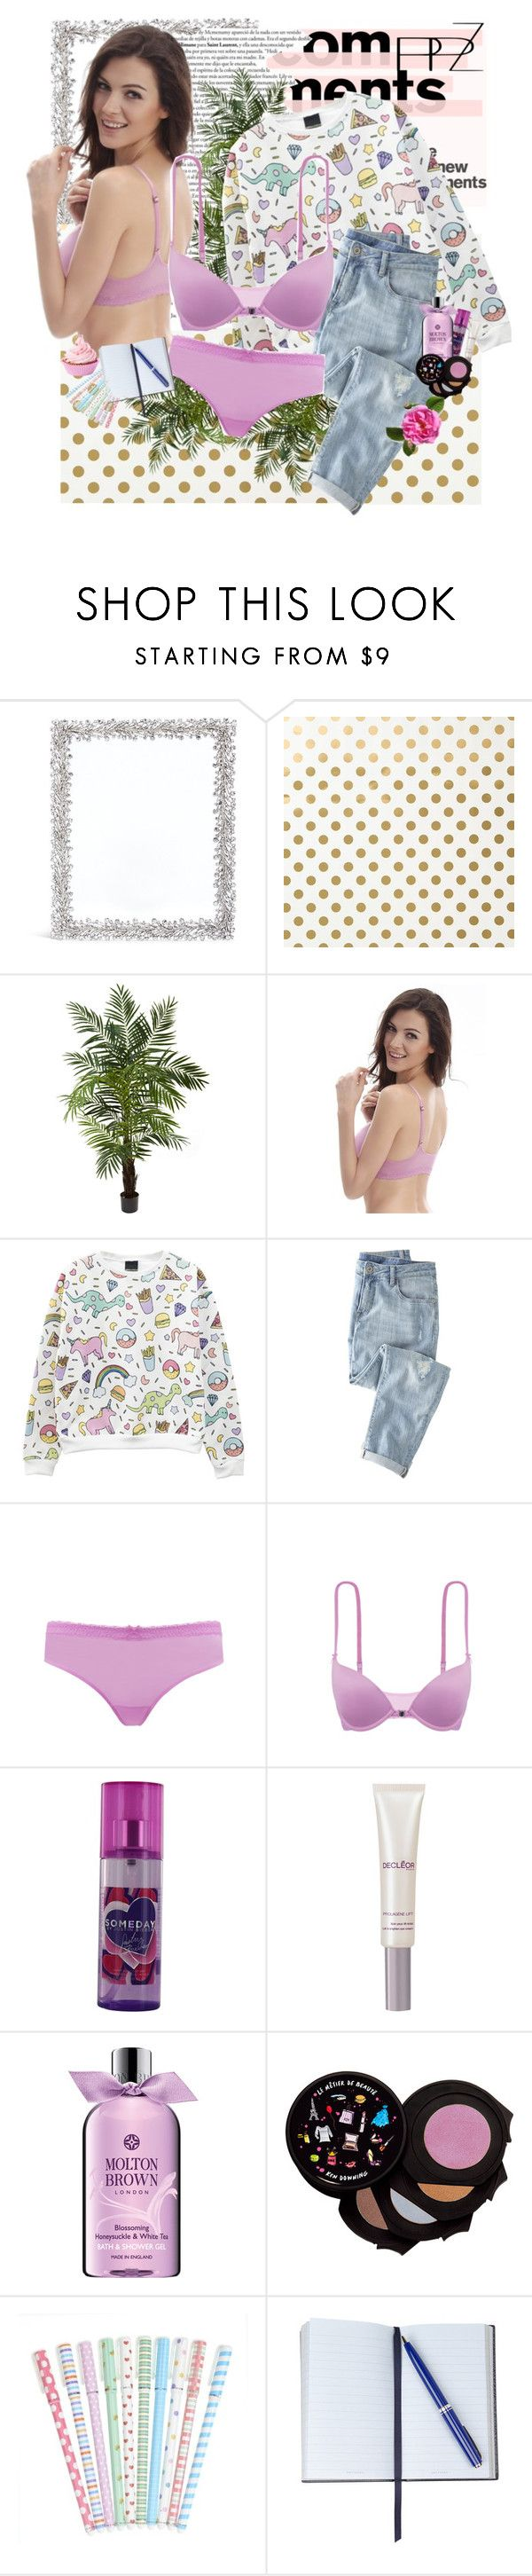 """""""PPZ Lingerie 9."""" by nensy ❤ liked on Polyvore featuring Lane Crawford, Kate Spade, Nearly Natural, Wrap, Justin Bieber, Decléor, Molton Brown, Le Métier de Beauté, Smythson and lingerie"""